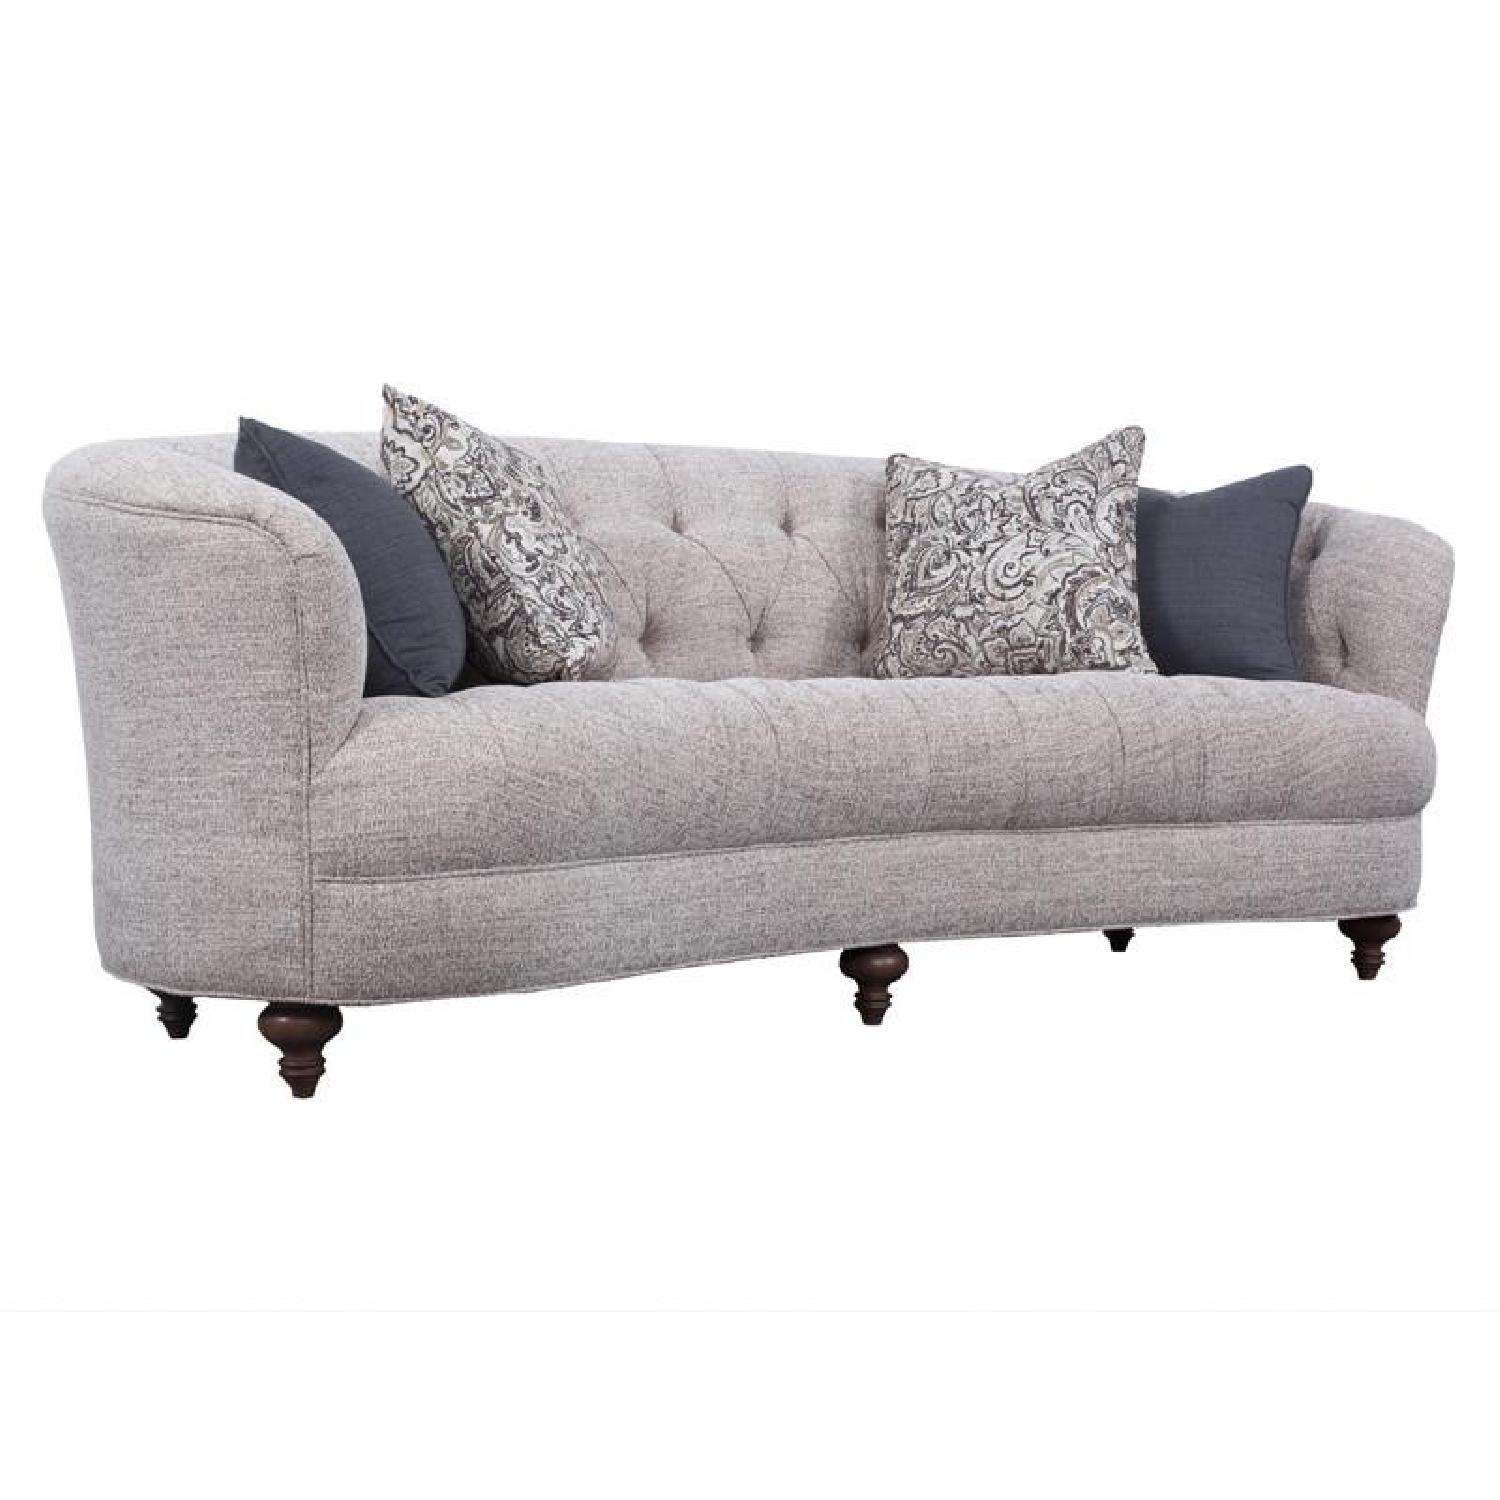 Magnussen Home Furnishings Rounded Sofa